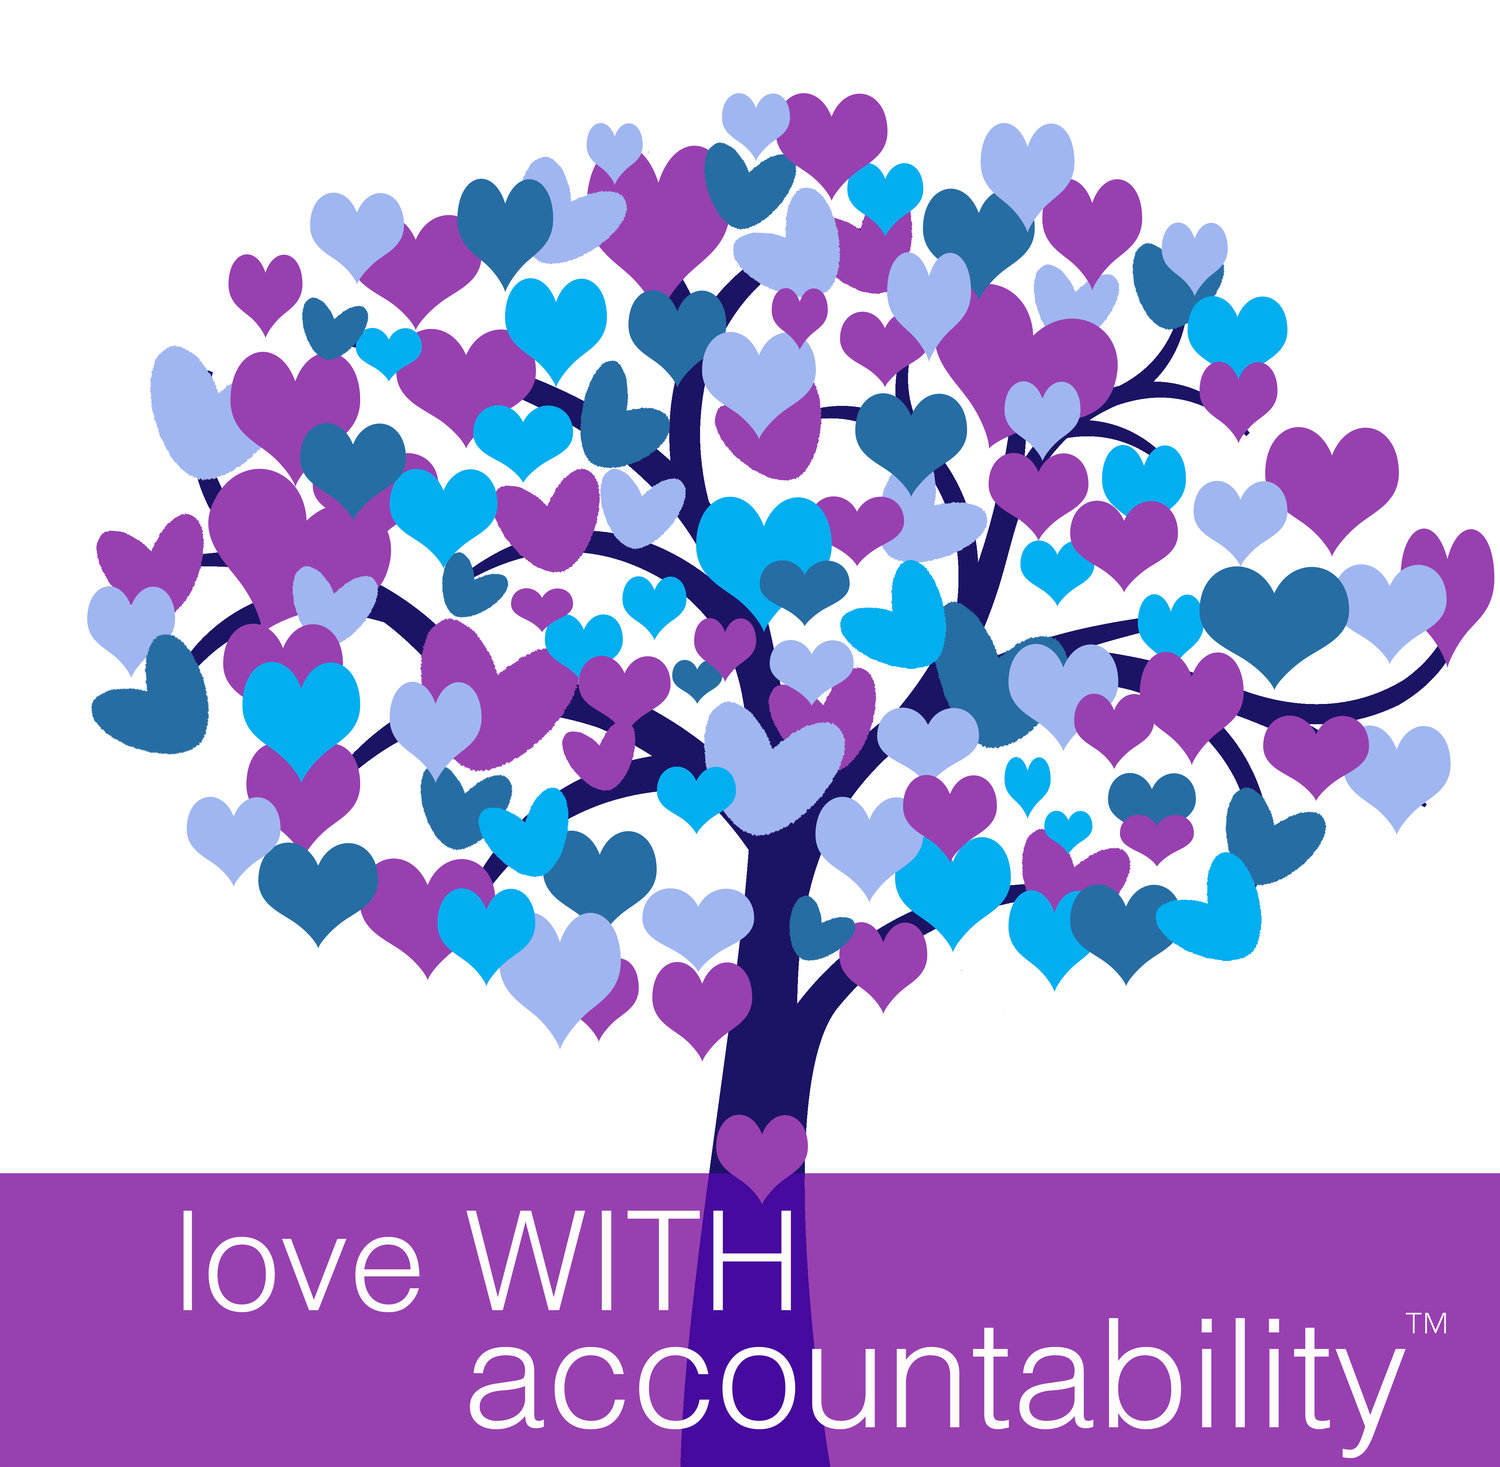 loveWITHaccountability™